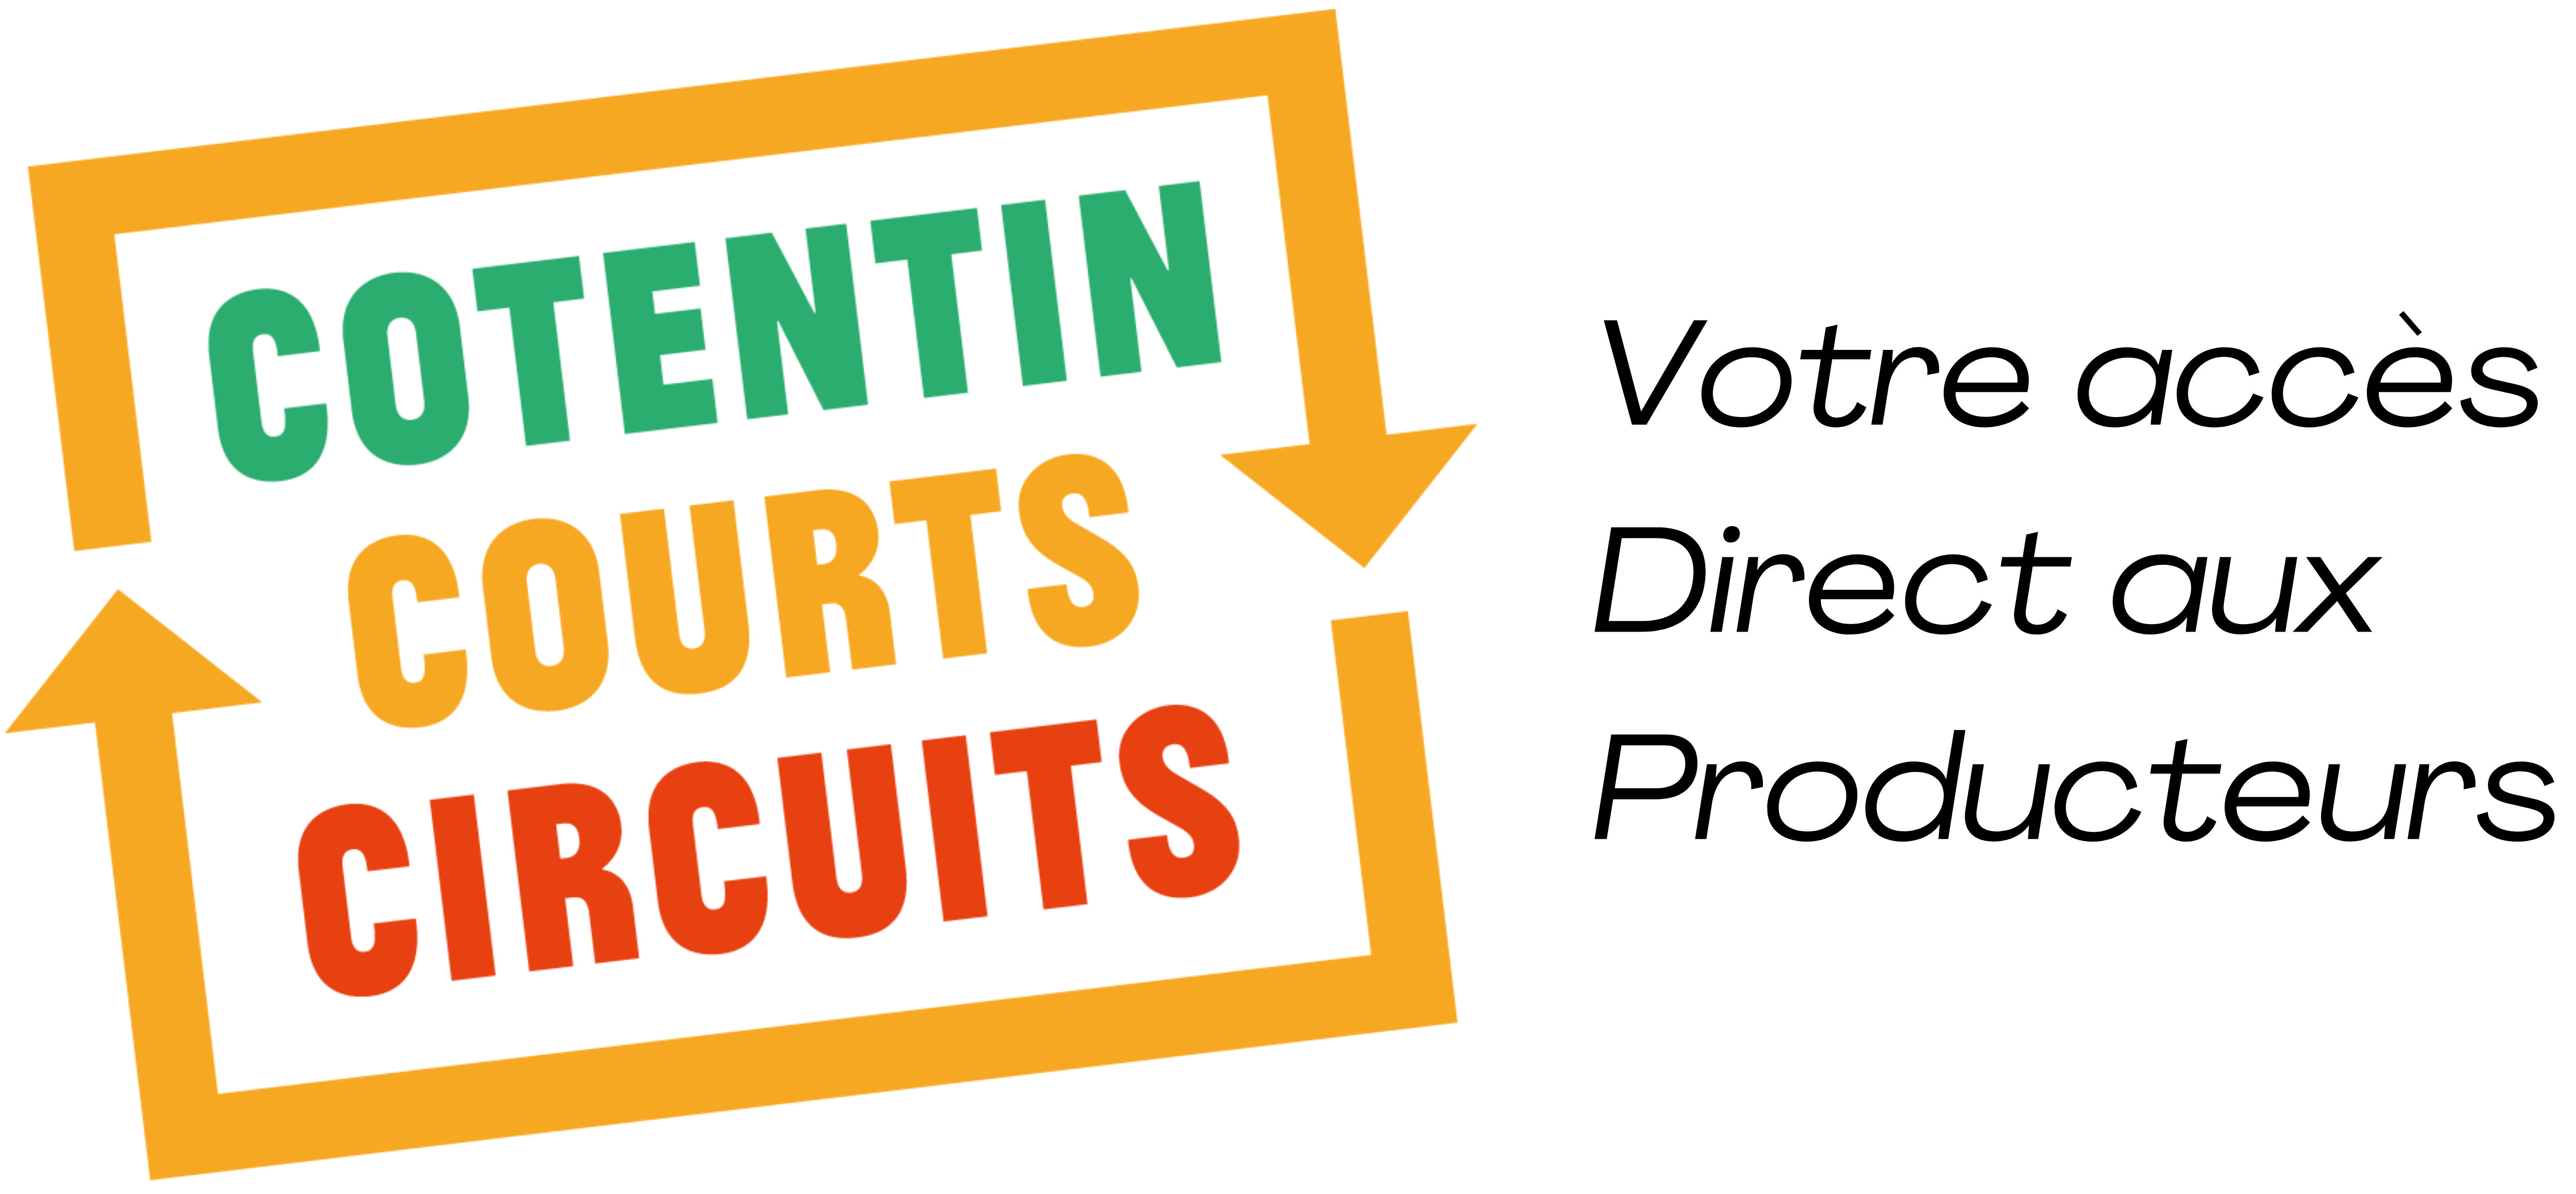 Cotentin Courts Circuits